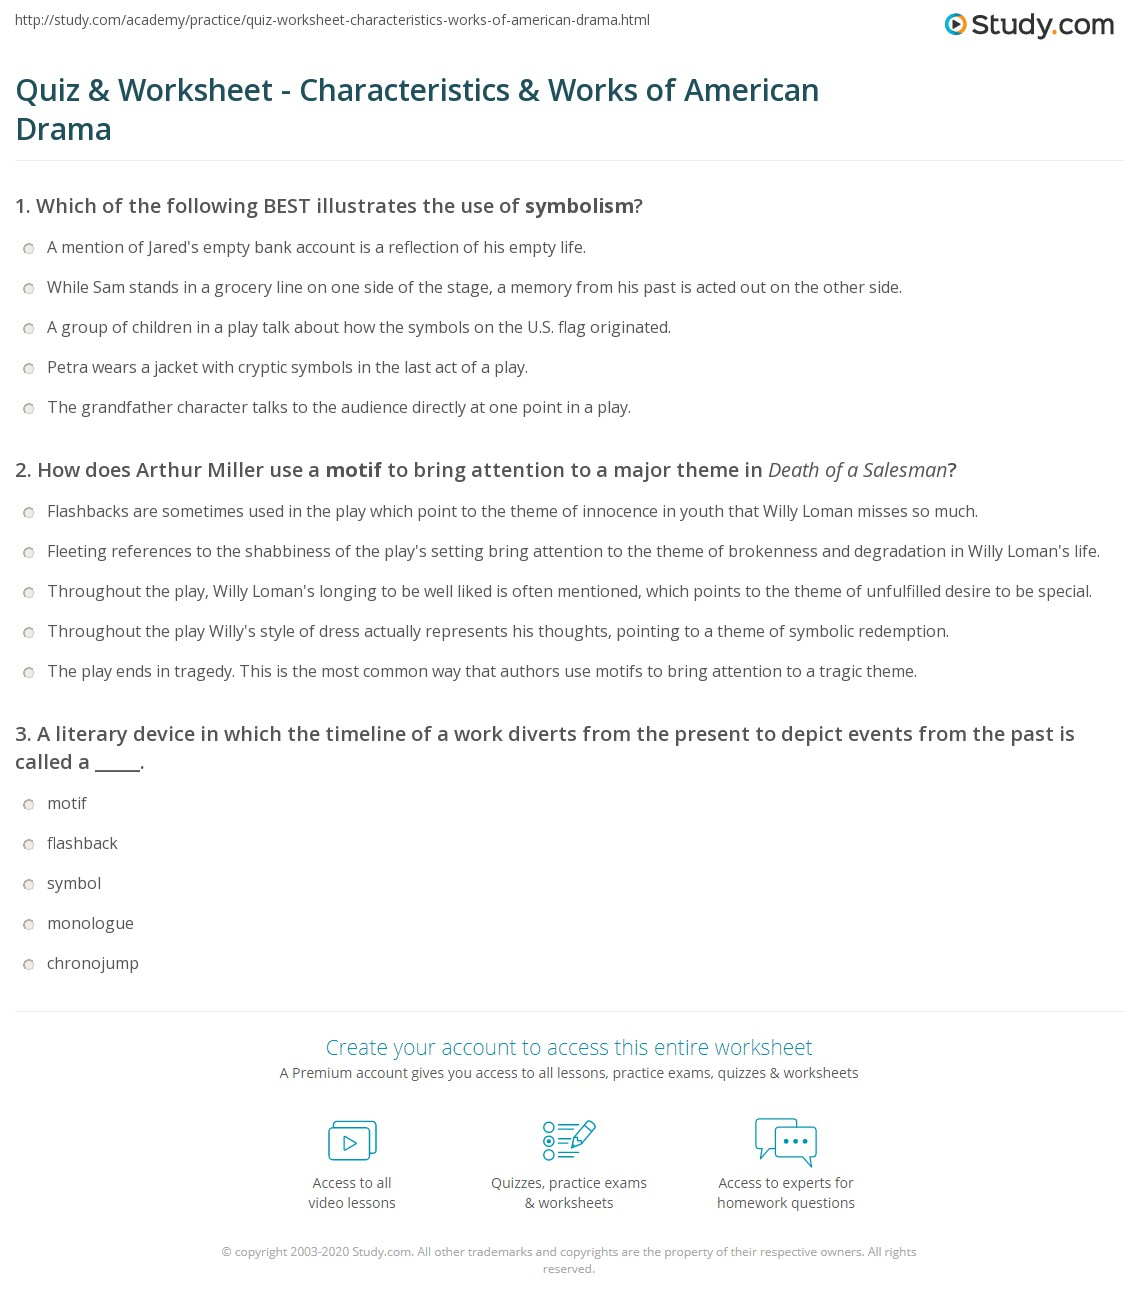 Quiz worksheet characteristics works of american drama print analyzing american drama techniques and plays worksheet buycottarizona Gallery